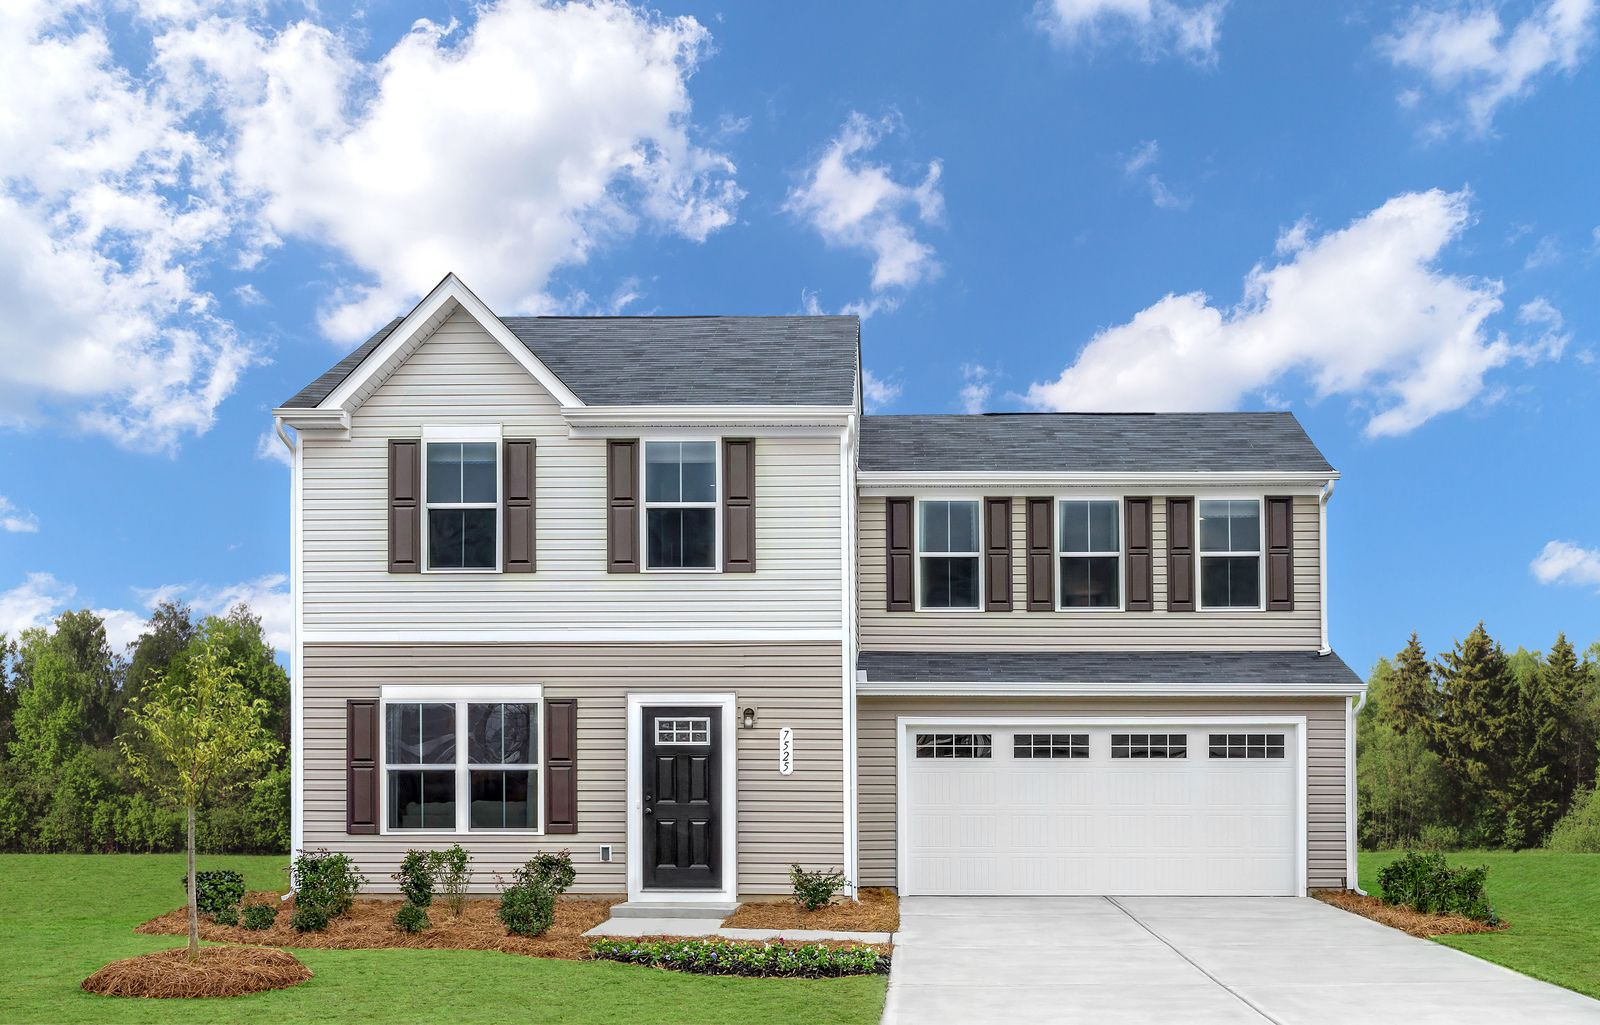 JOIN THE WALNUT RUN VIP LIST TODAY!:Affordable new homes in Groveport Madison schools, 2-car garages, full basements and little to no money down. Minutes to I-270, from mid $200s.Click here to join the VIP List!